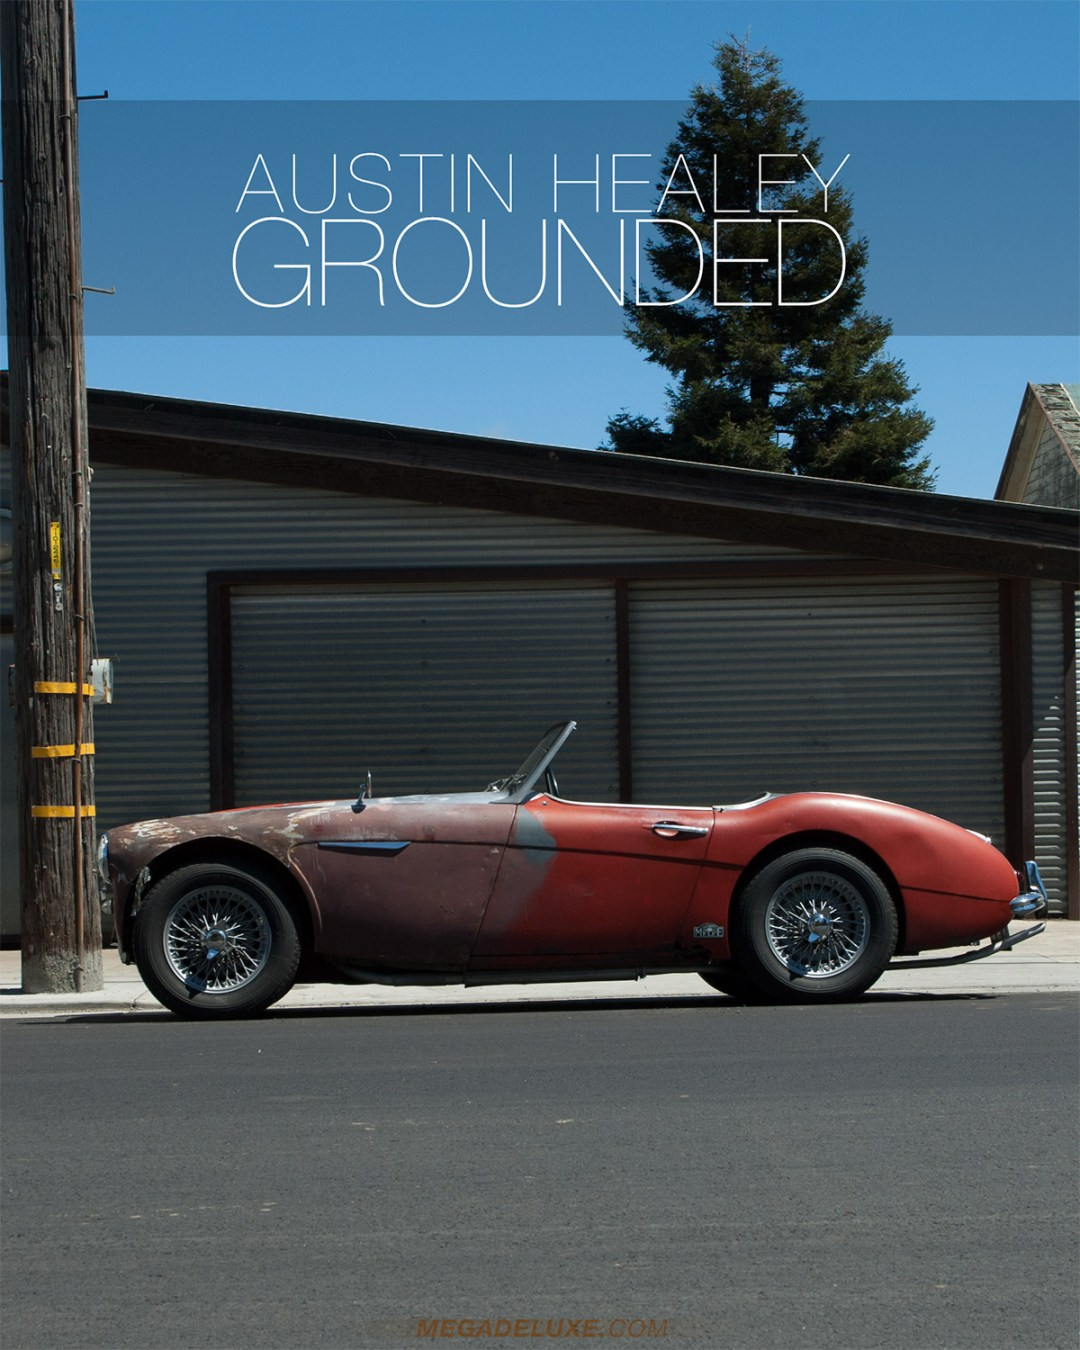 austin-healey-grounded